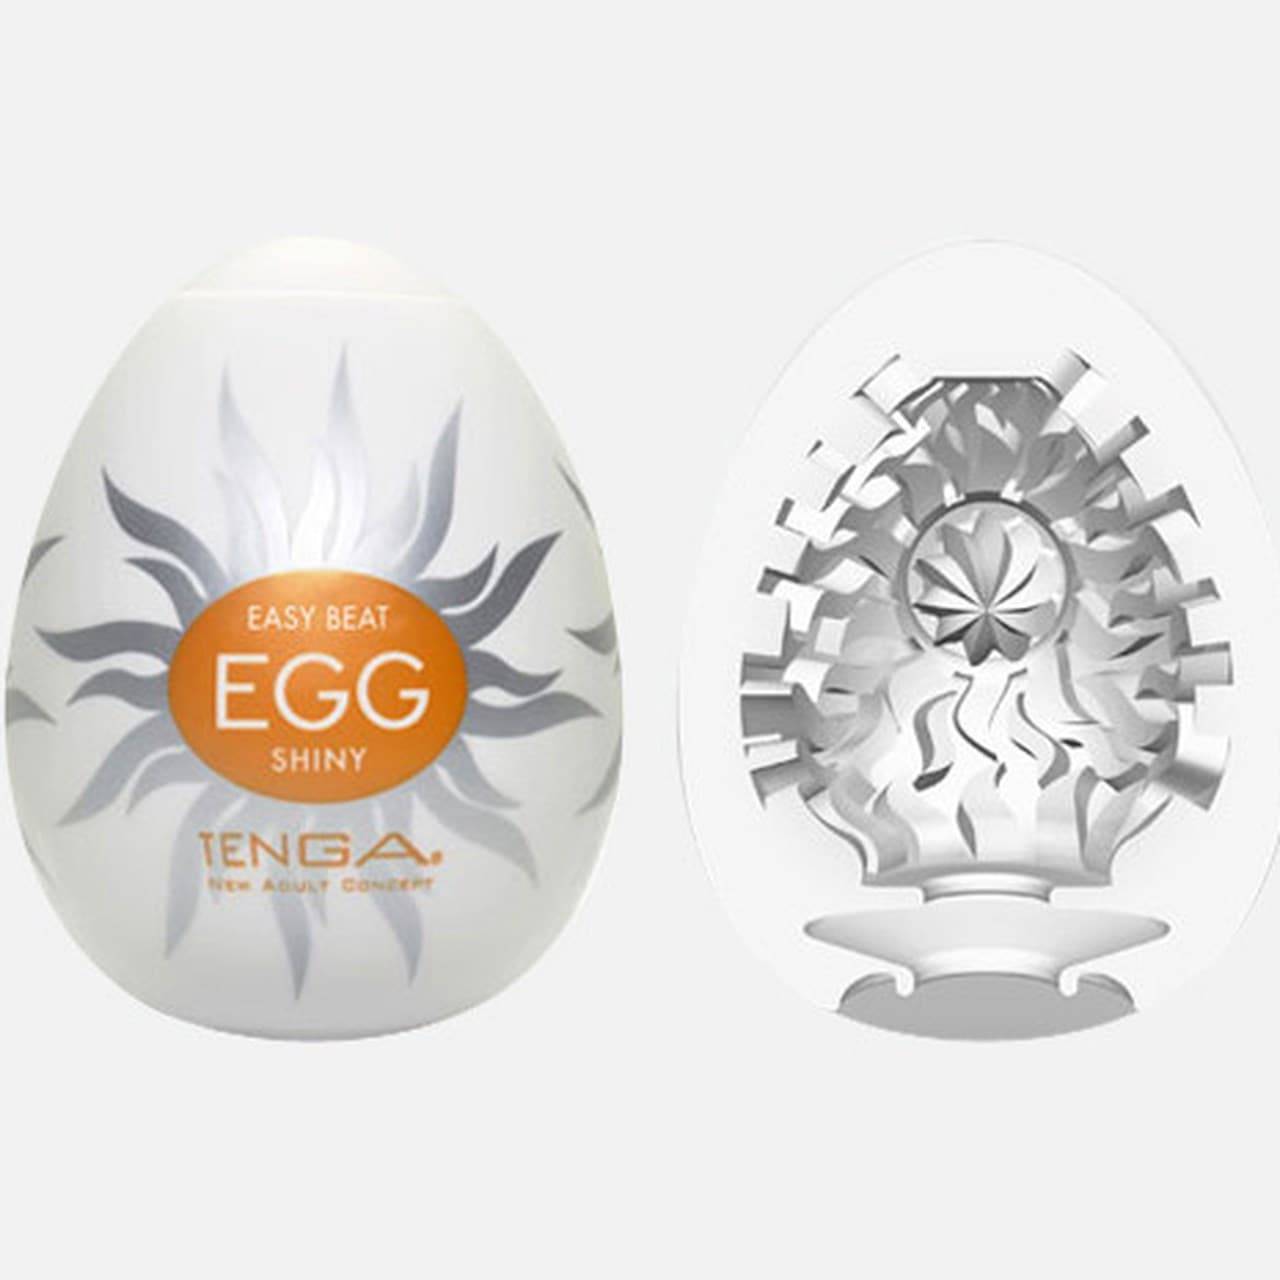 Tenga Egg-Shiny, Мастурбатор-яйцо - фото 18585